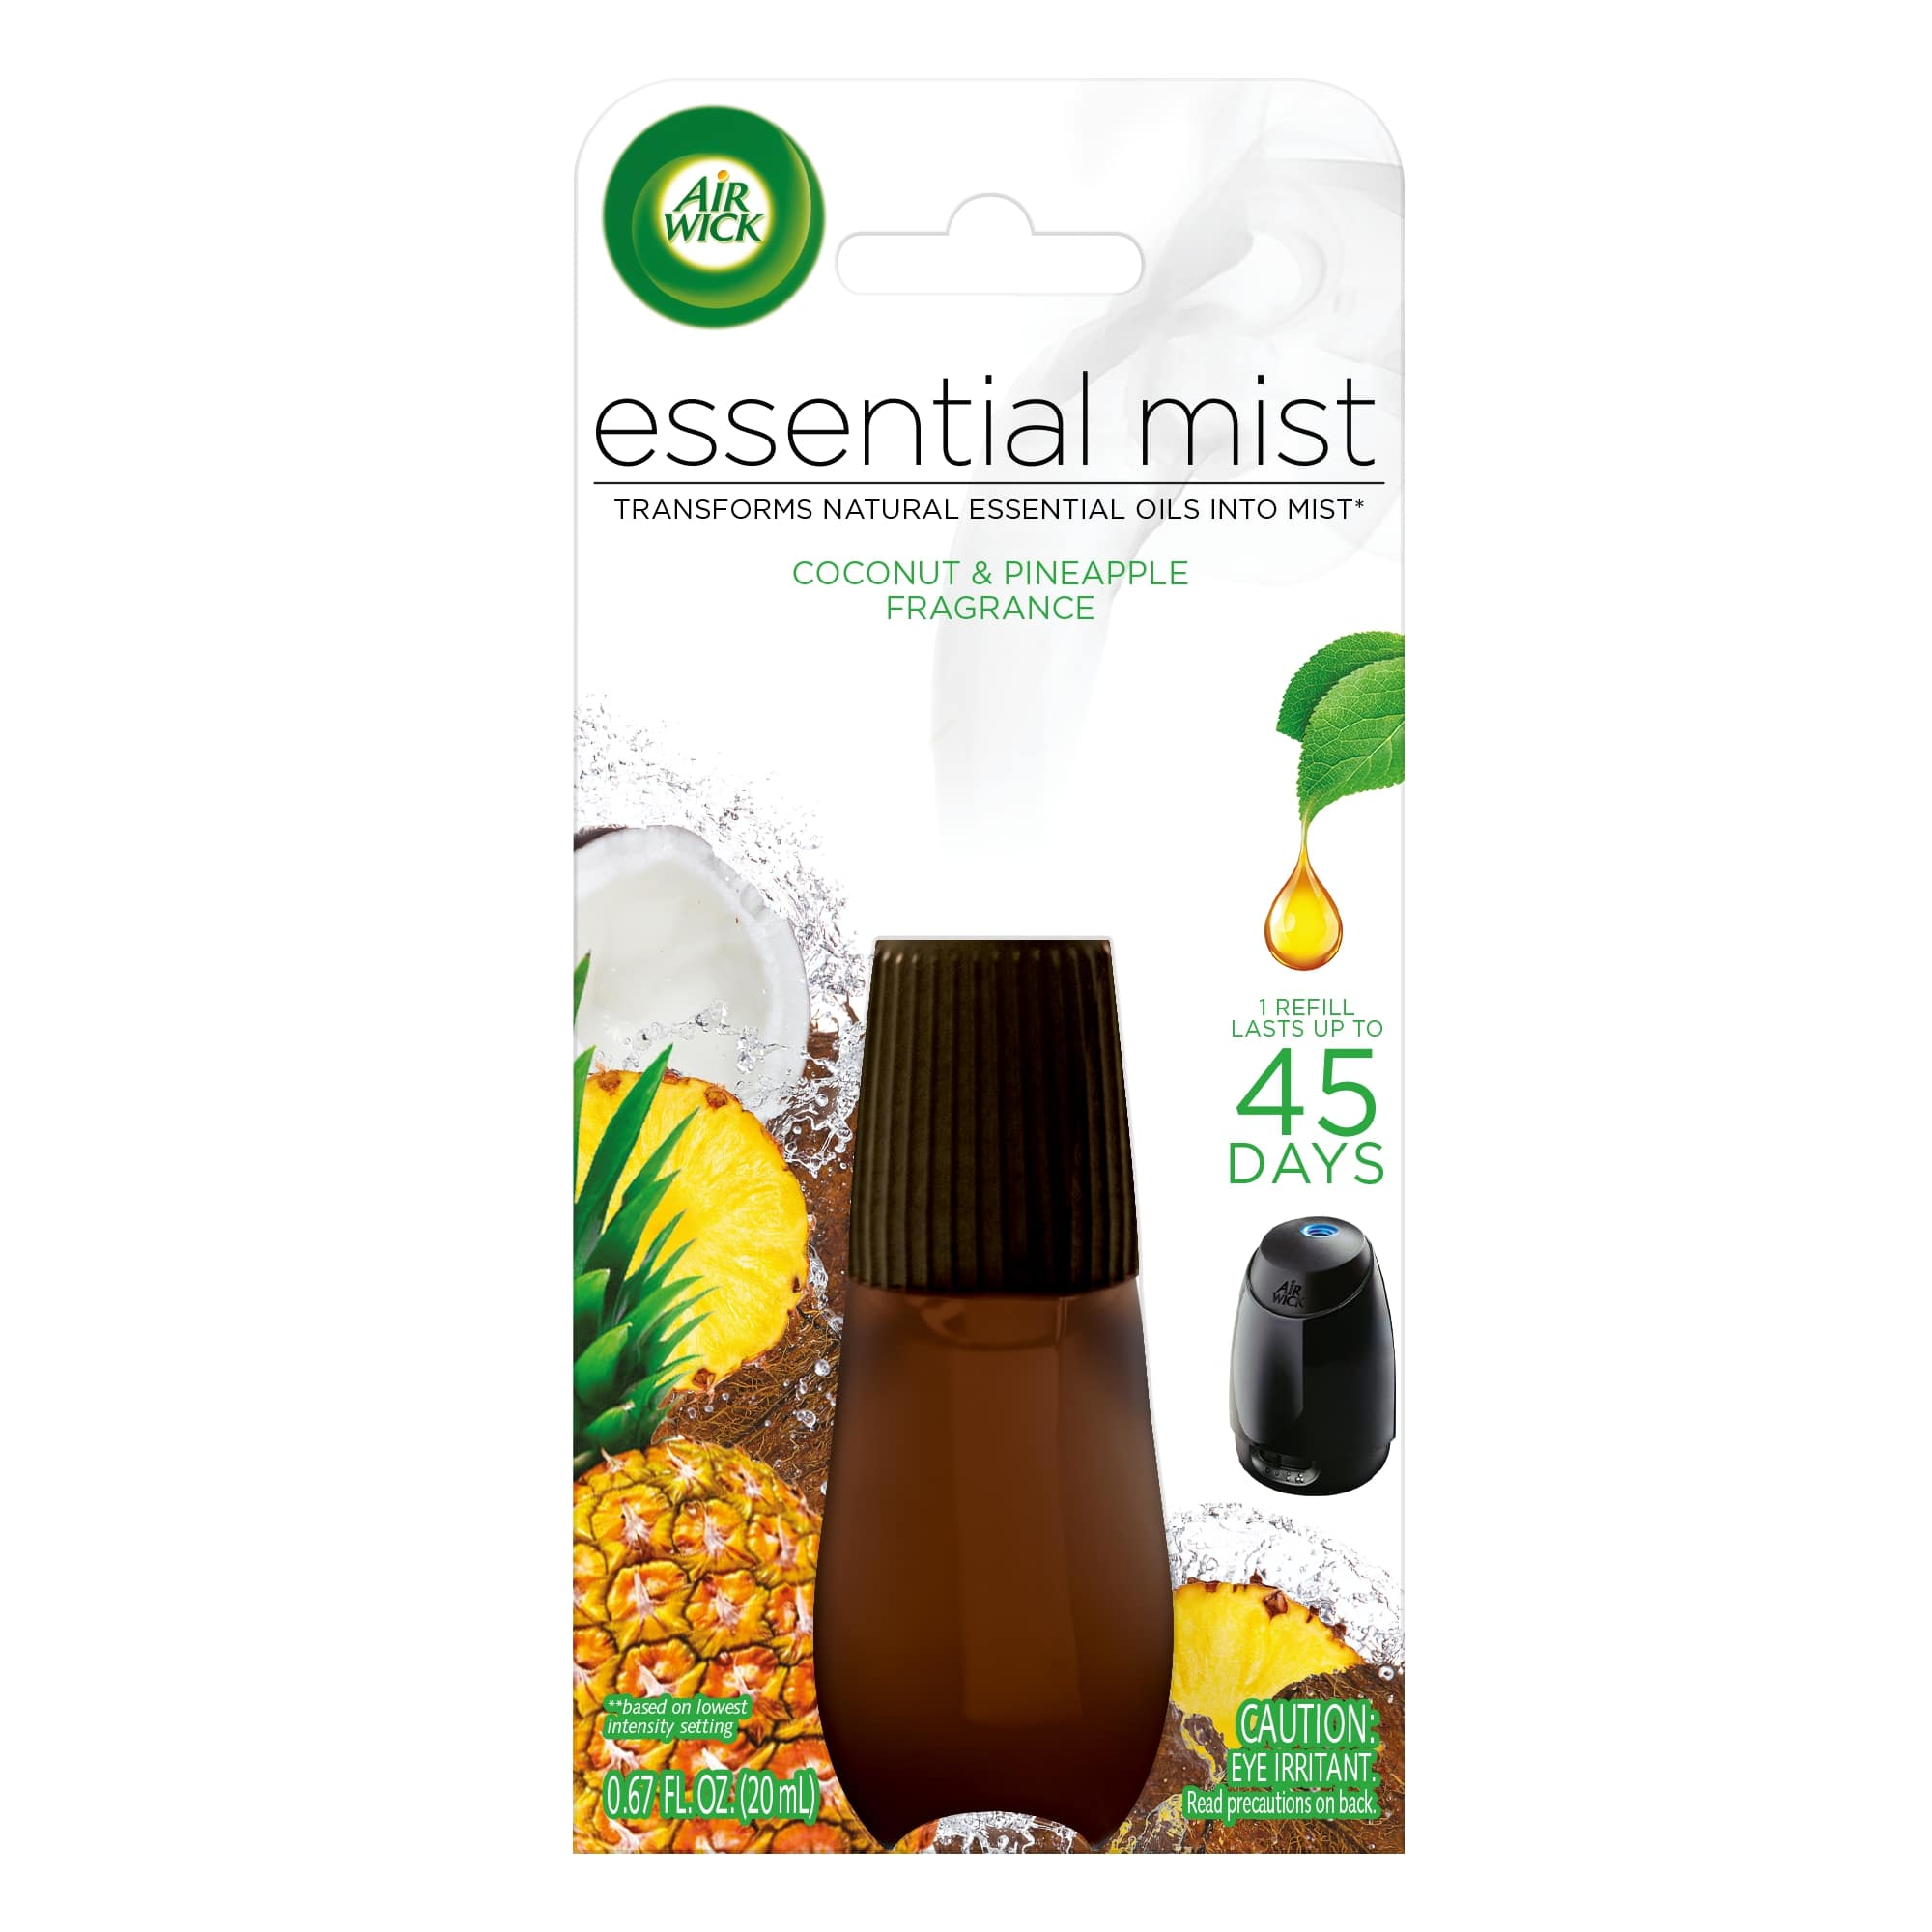 AIR WICK® Essential Mist - Coconut & Pineapple